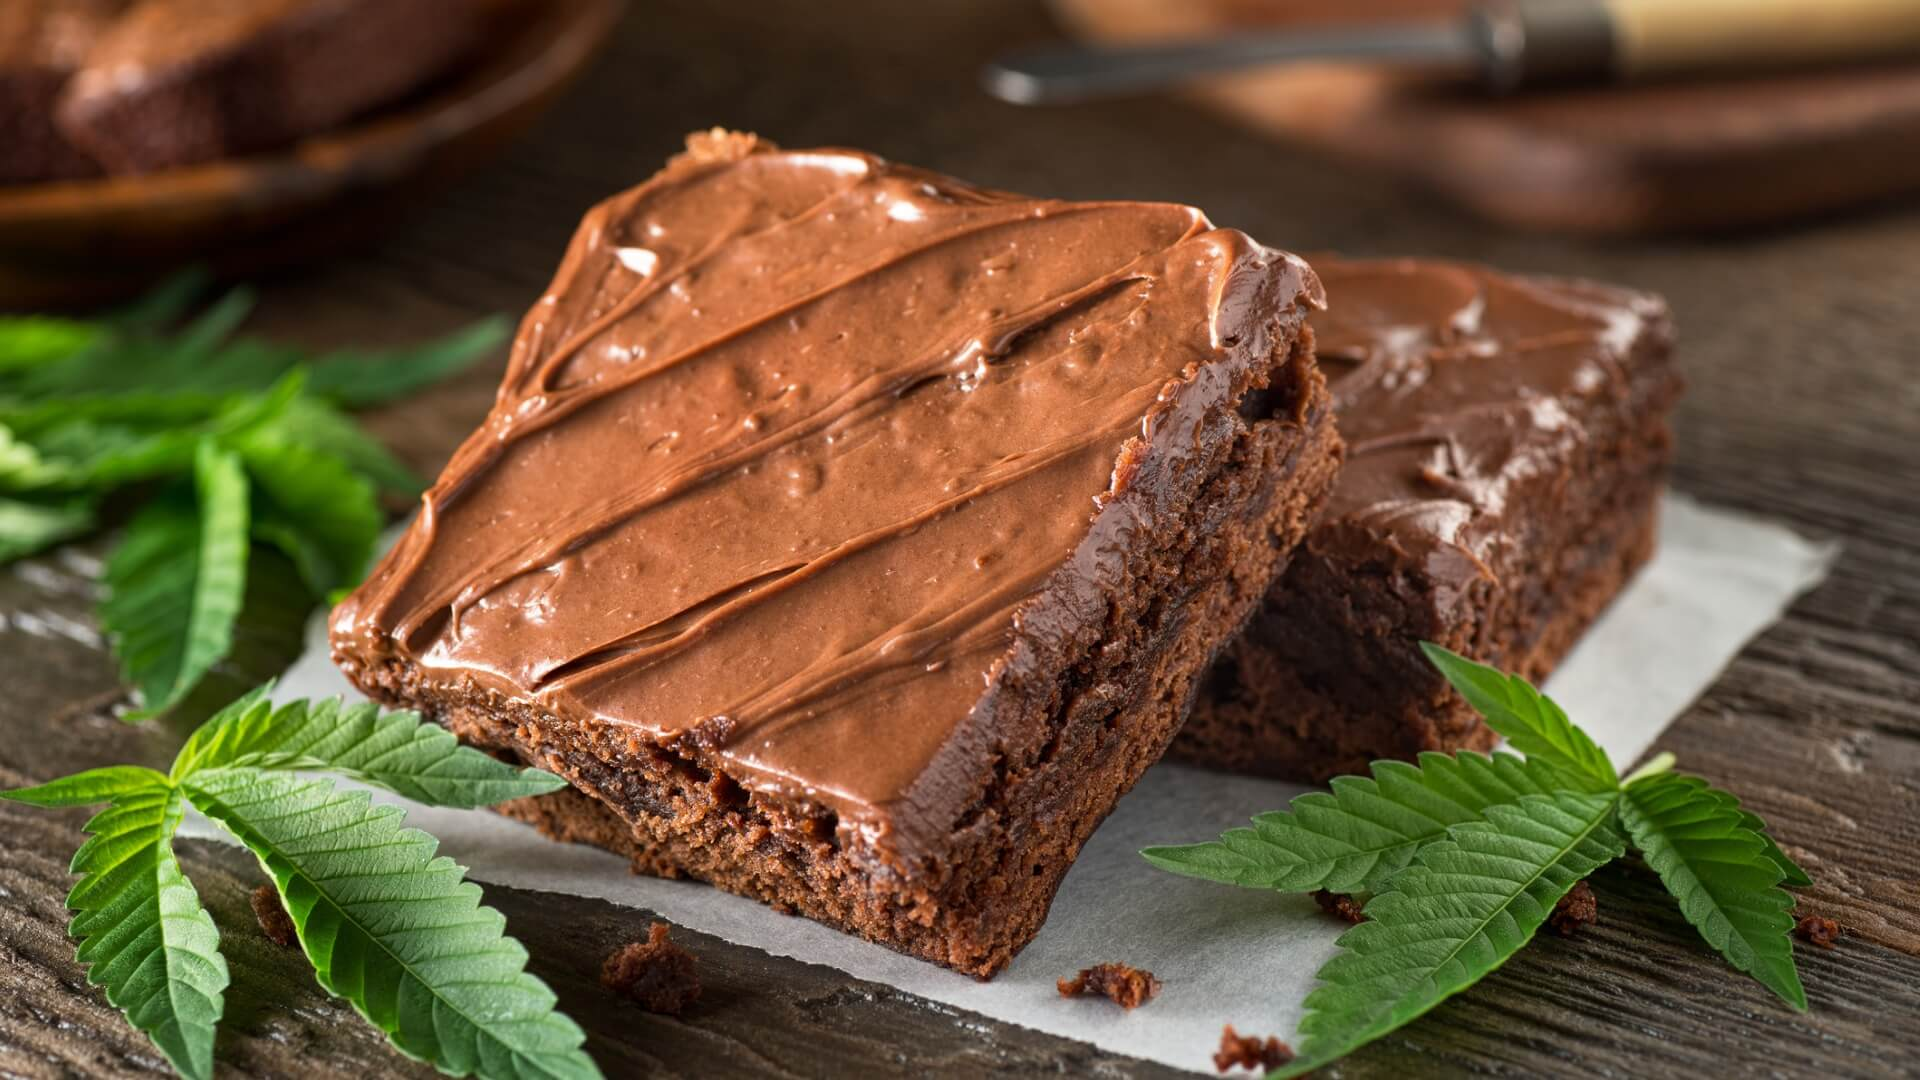 A weed brownie on a plate surrounded by weed leaves